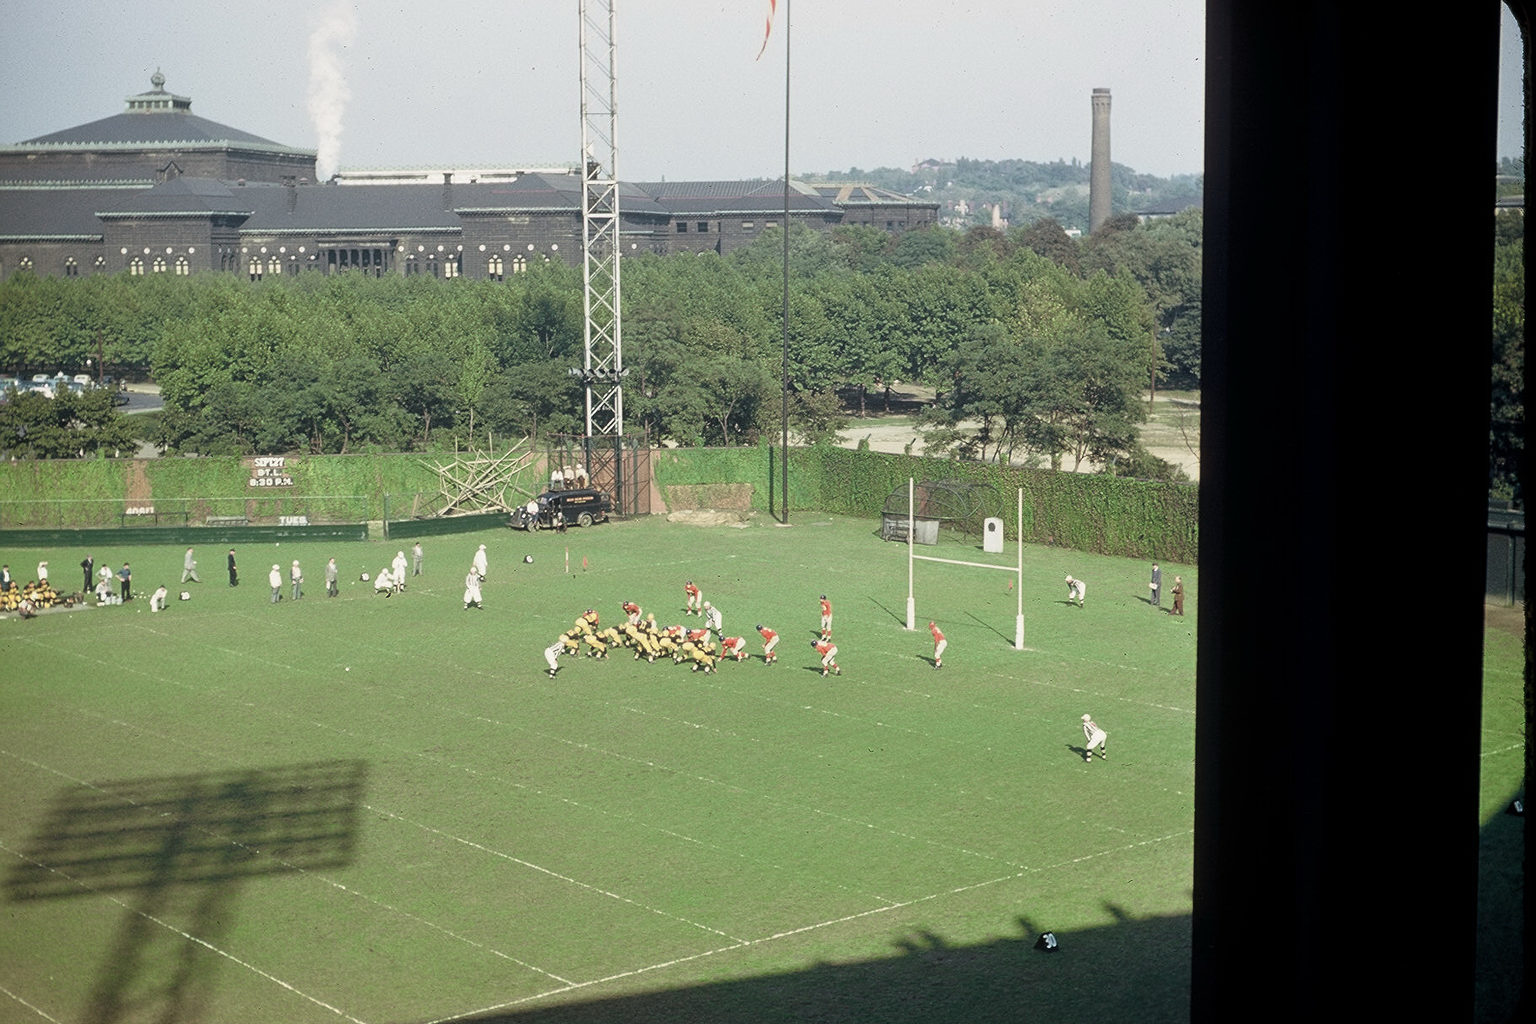 New York Giants at Pittsburgh Steelers (September 25, 1949)